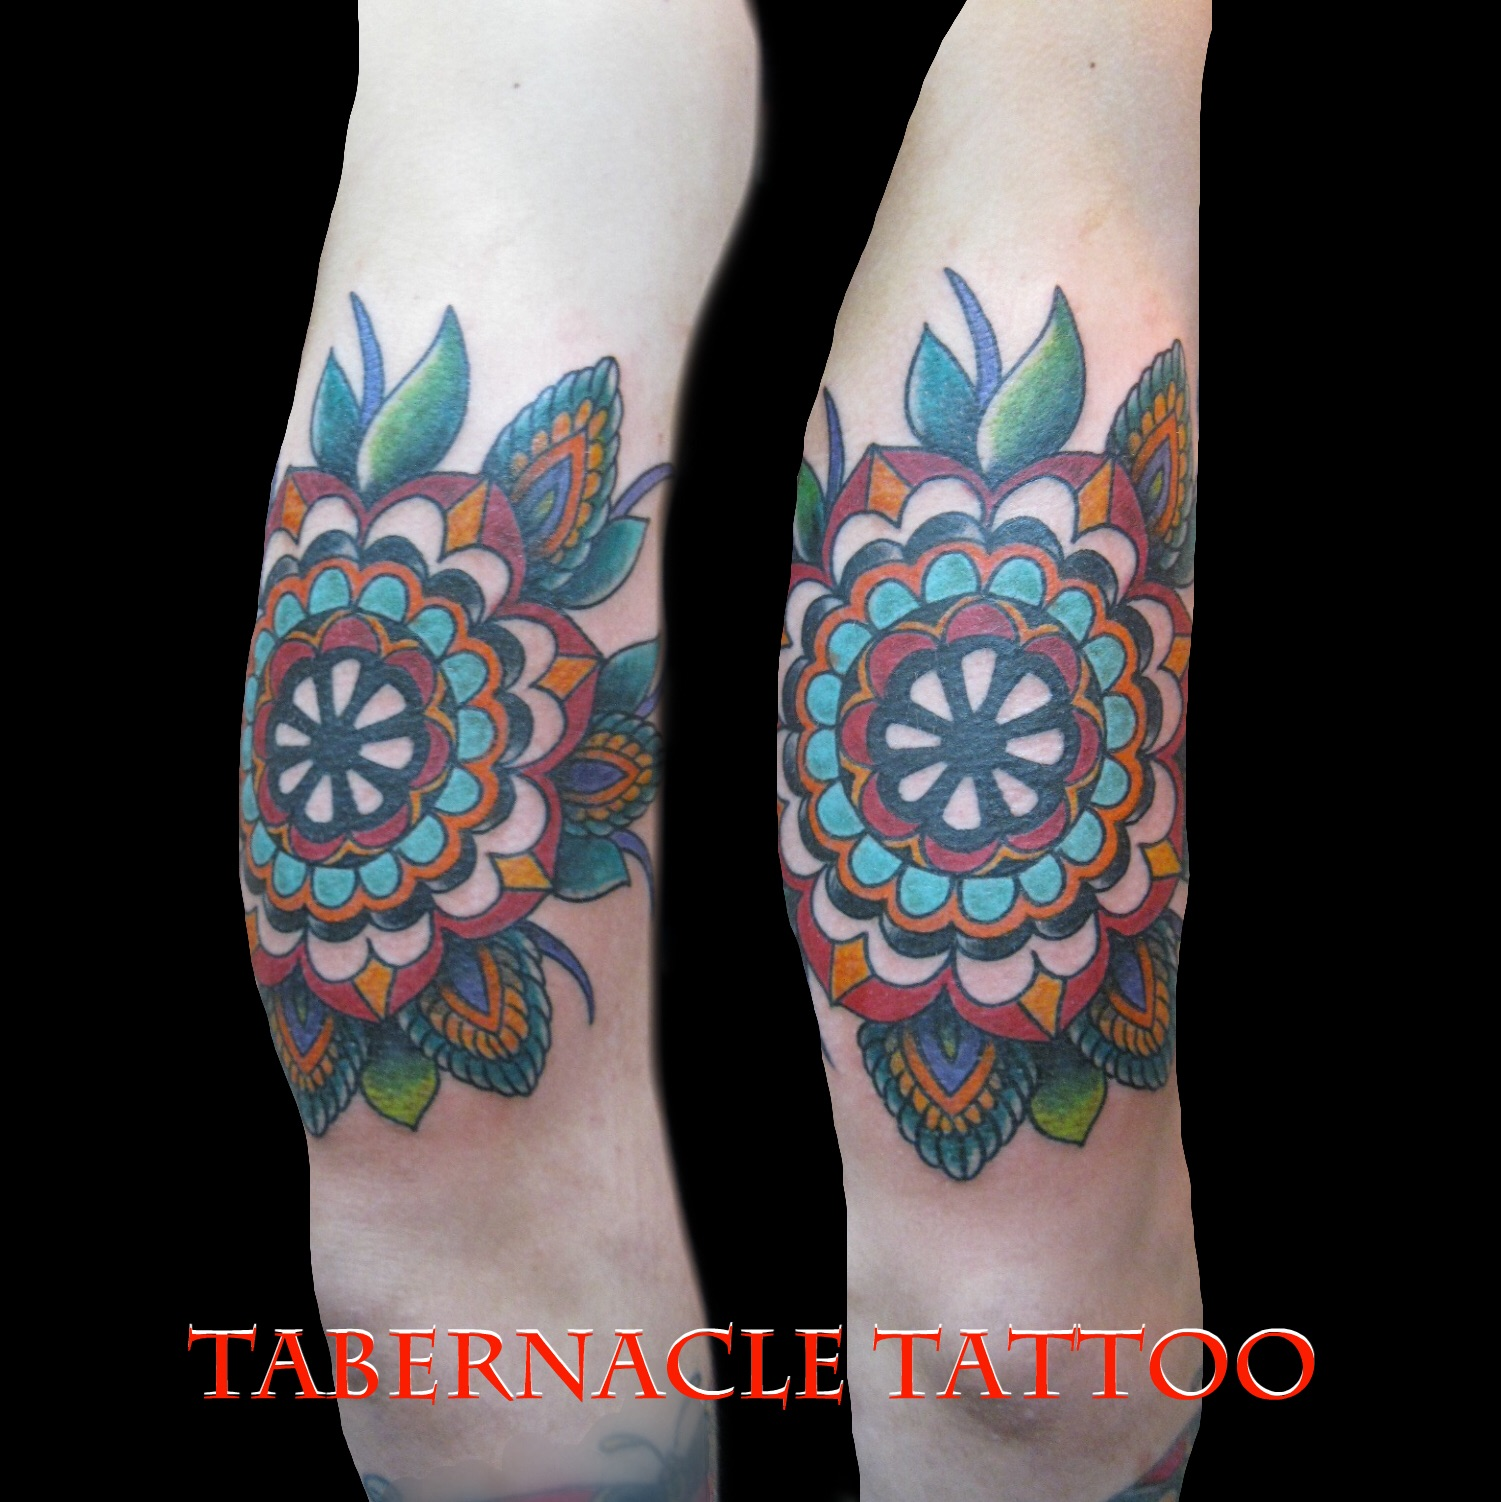 Tattoo Shops In Tampa Fl Tabernacle Tattoo Ideas And Designs